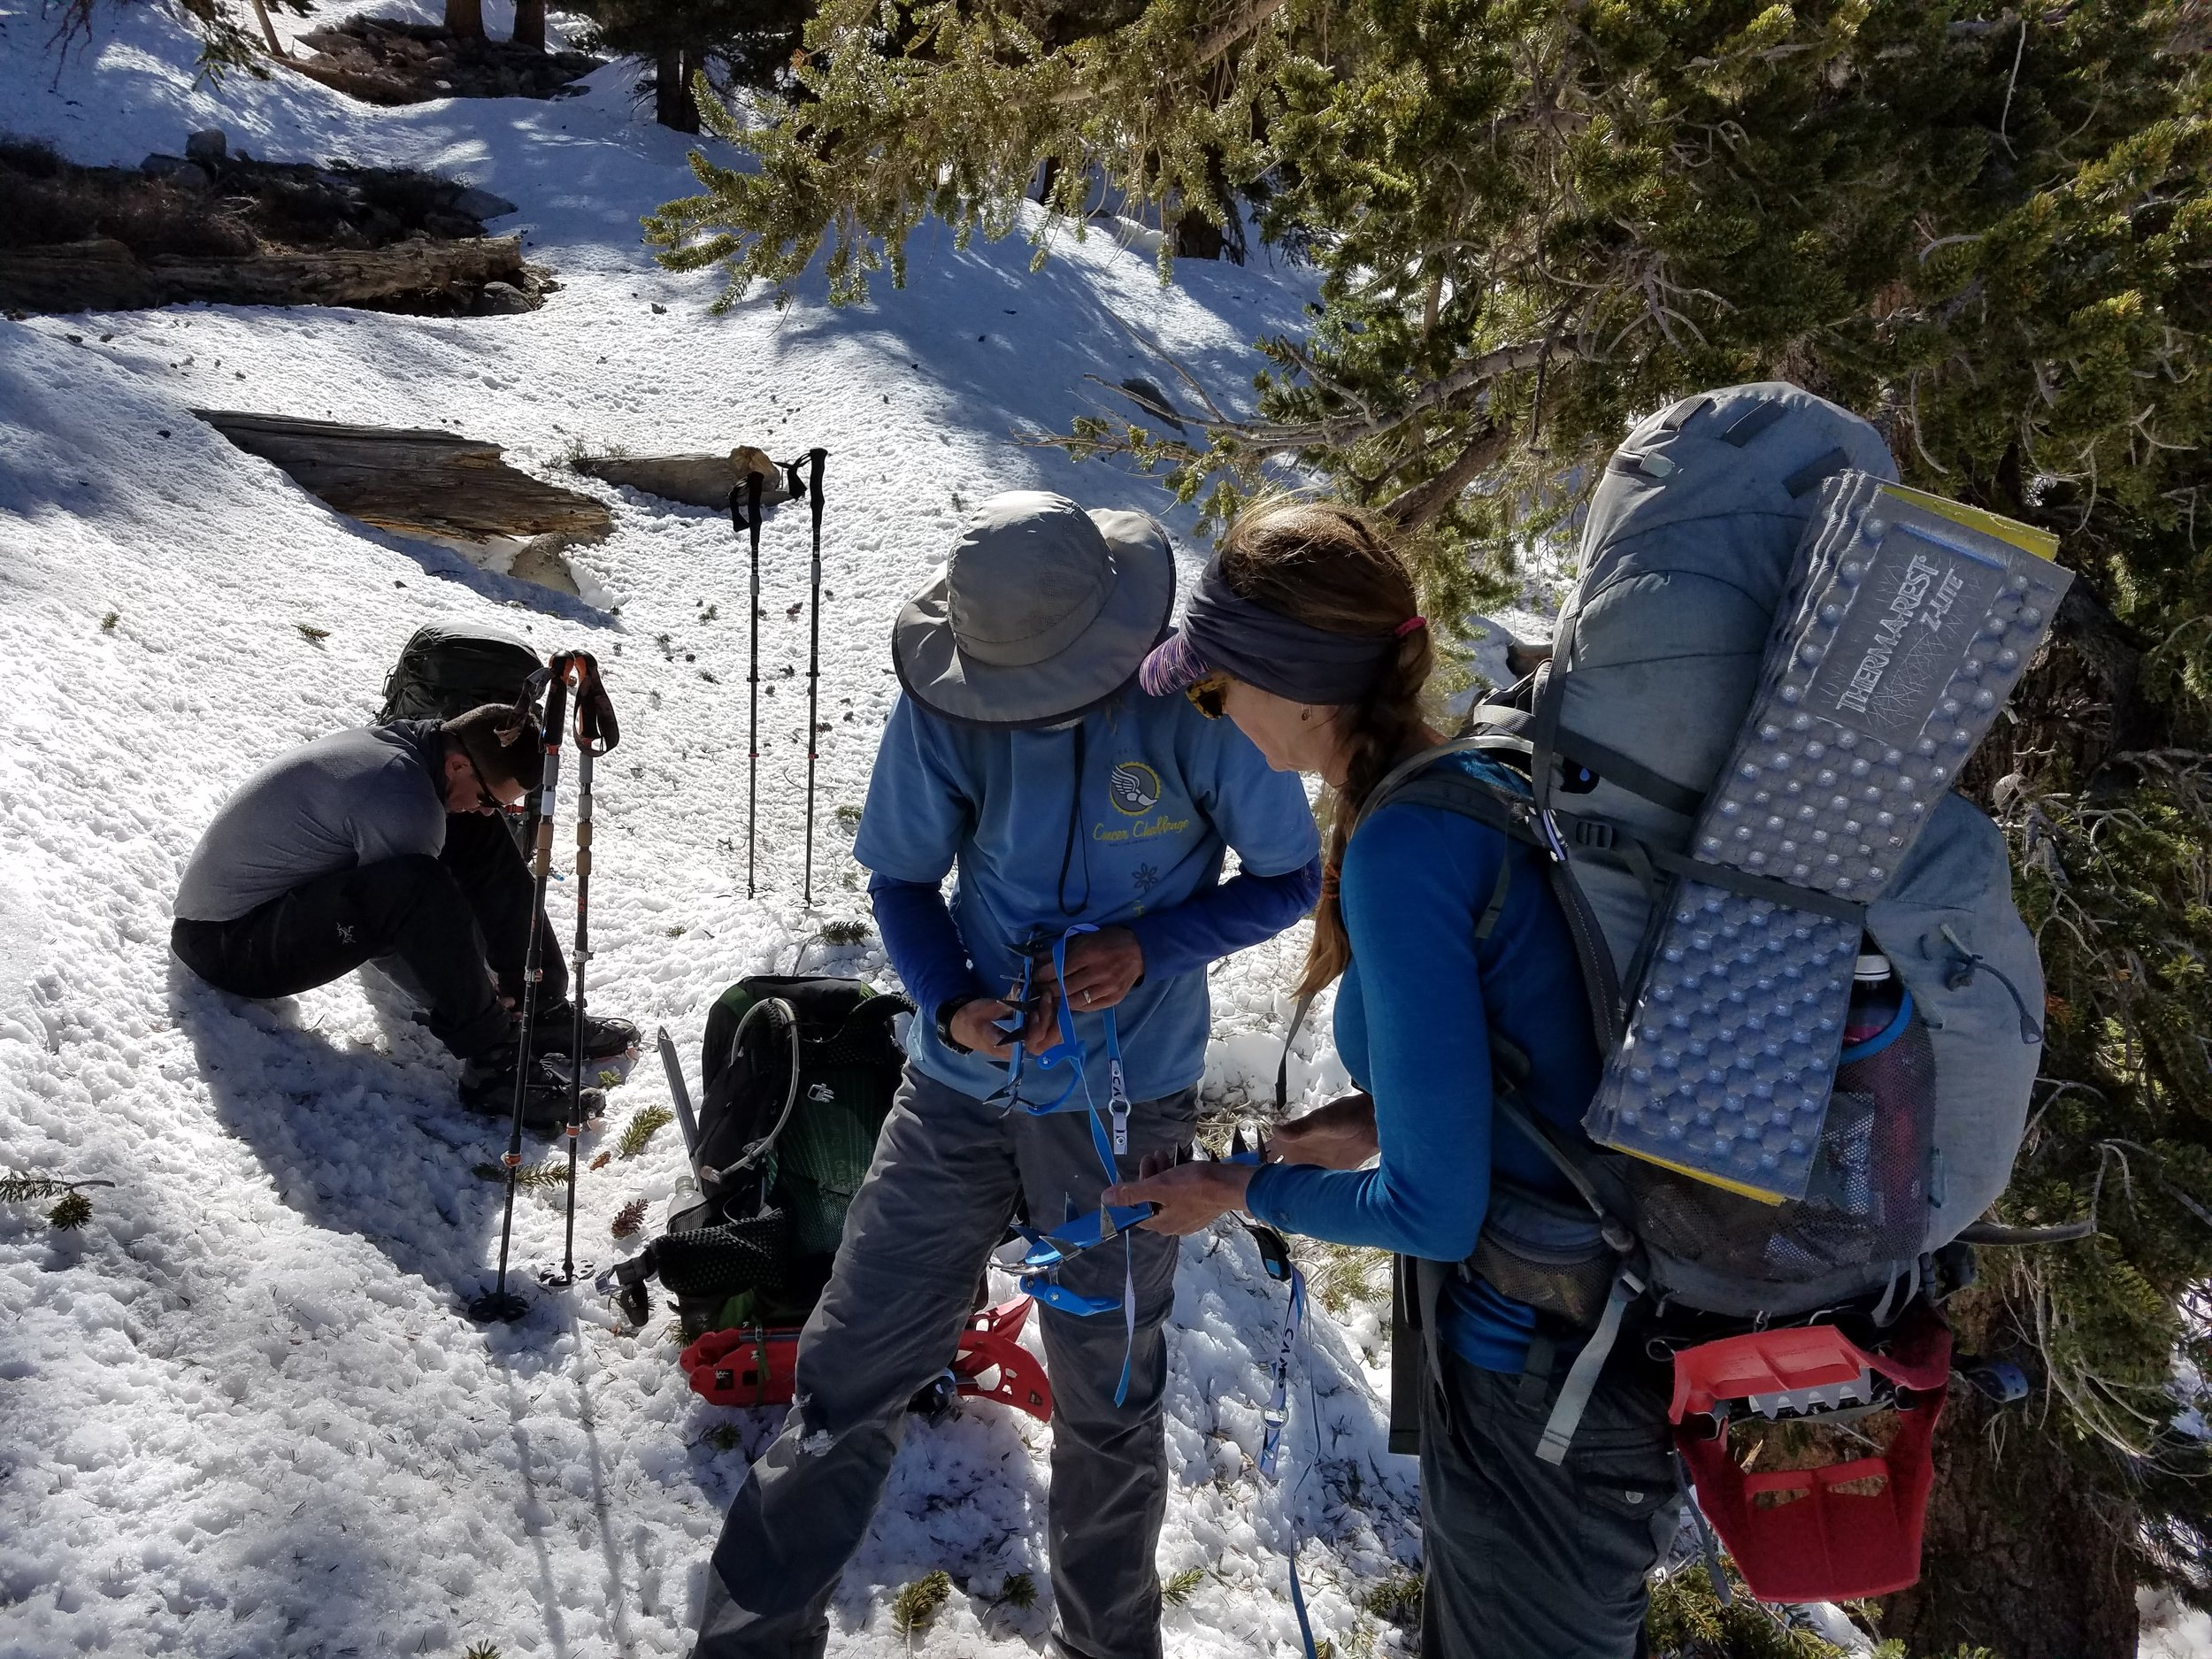 Everyone figuring out how to strap on their crampons.